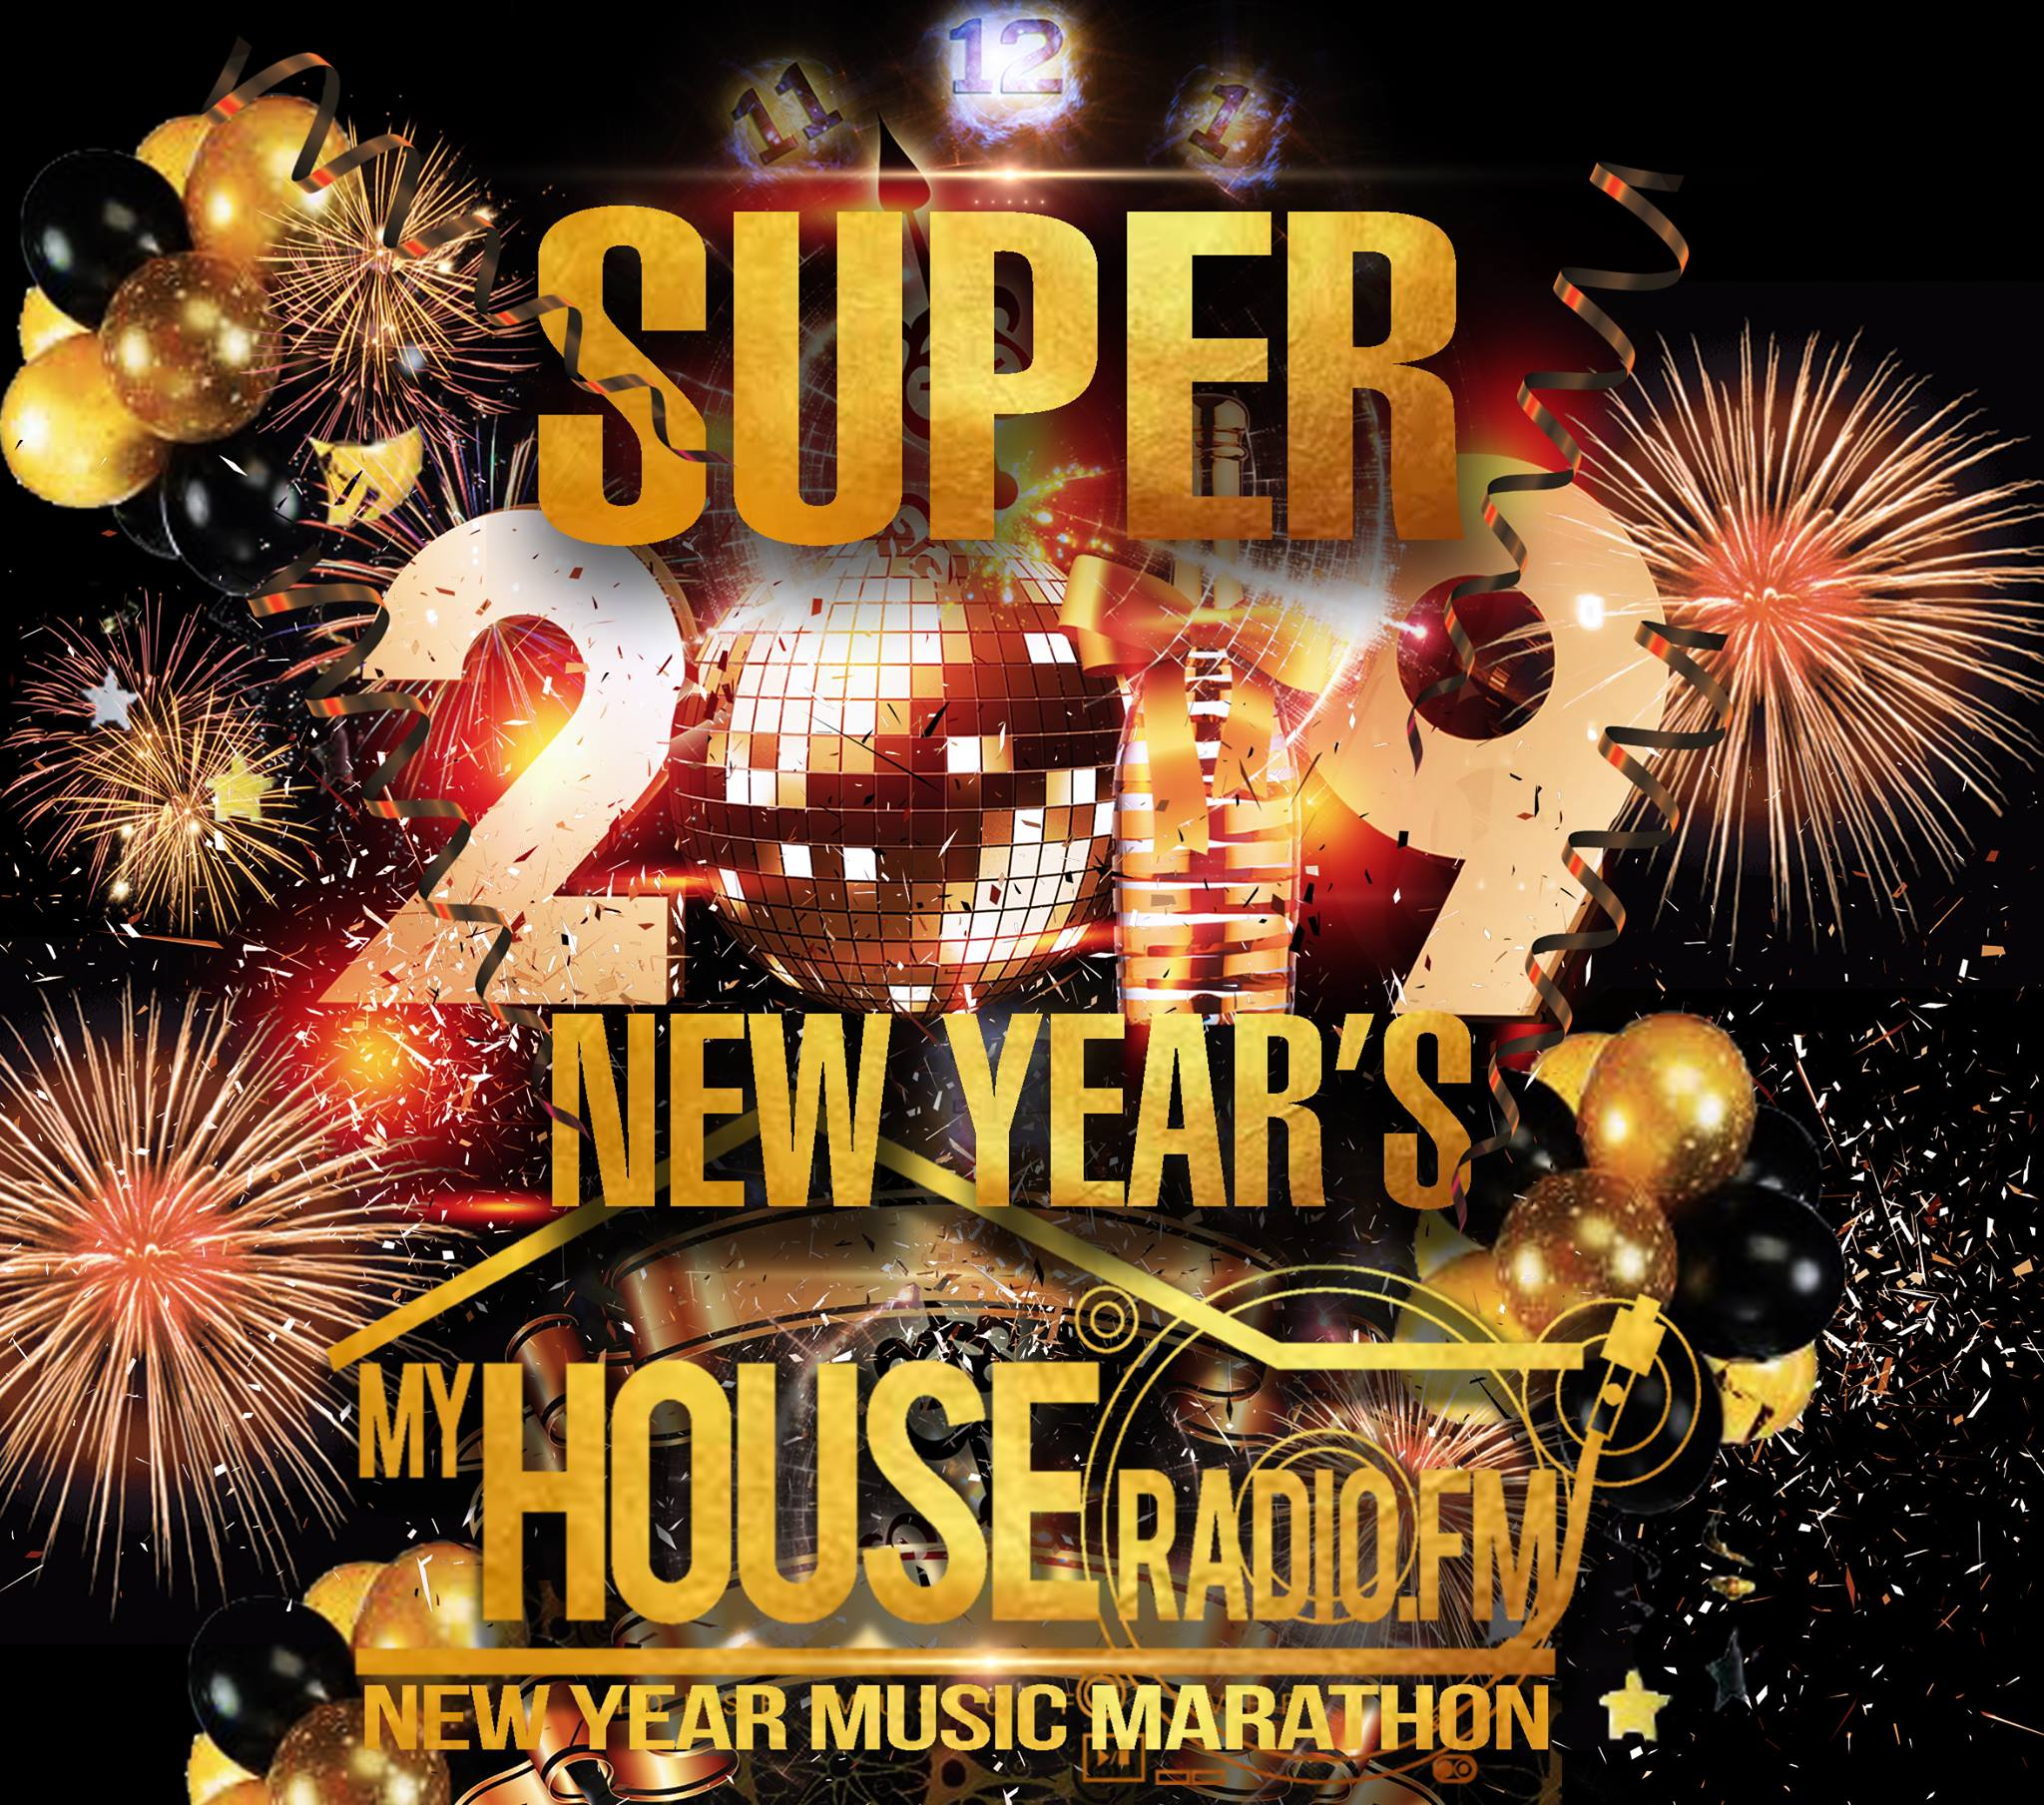 My House Radio New Years Three Day Marathon 2019 12/29 – 1/1/2019